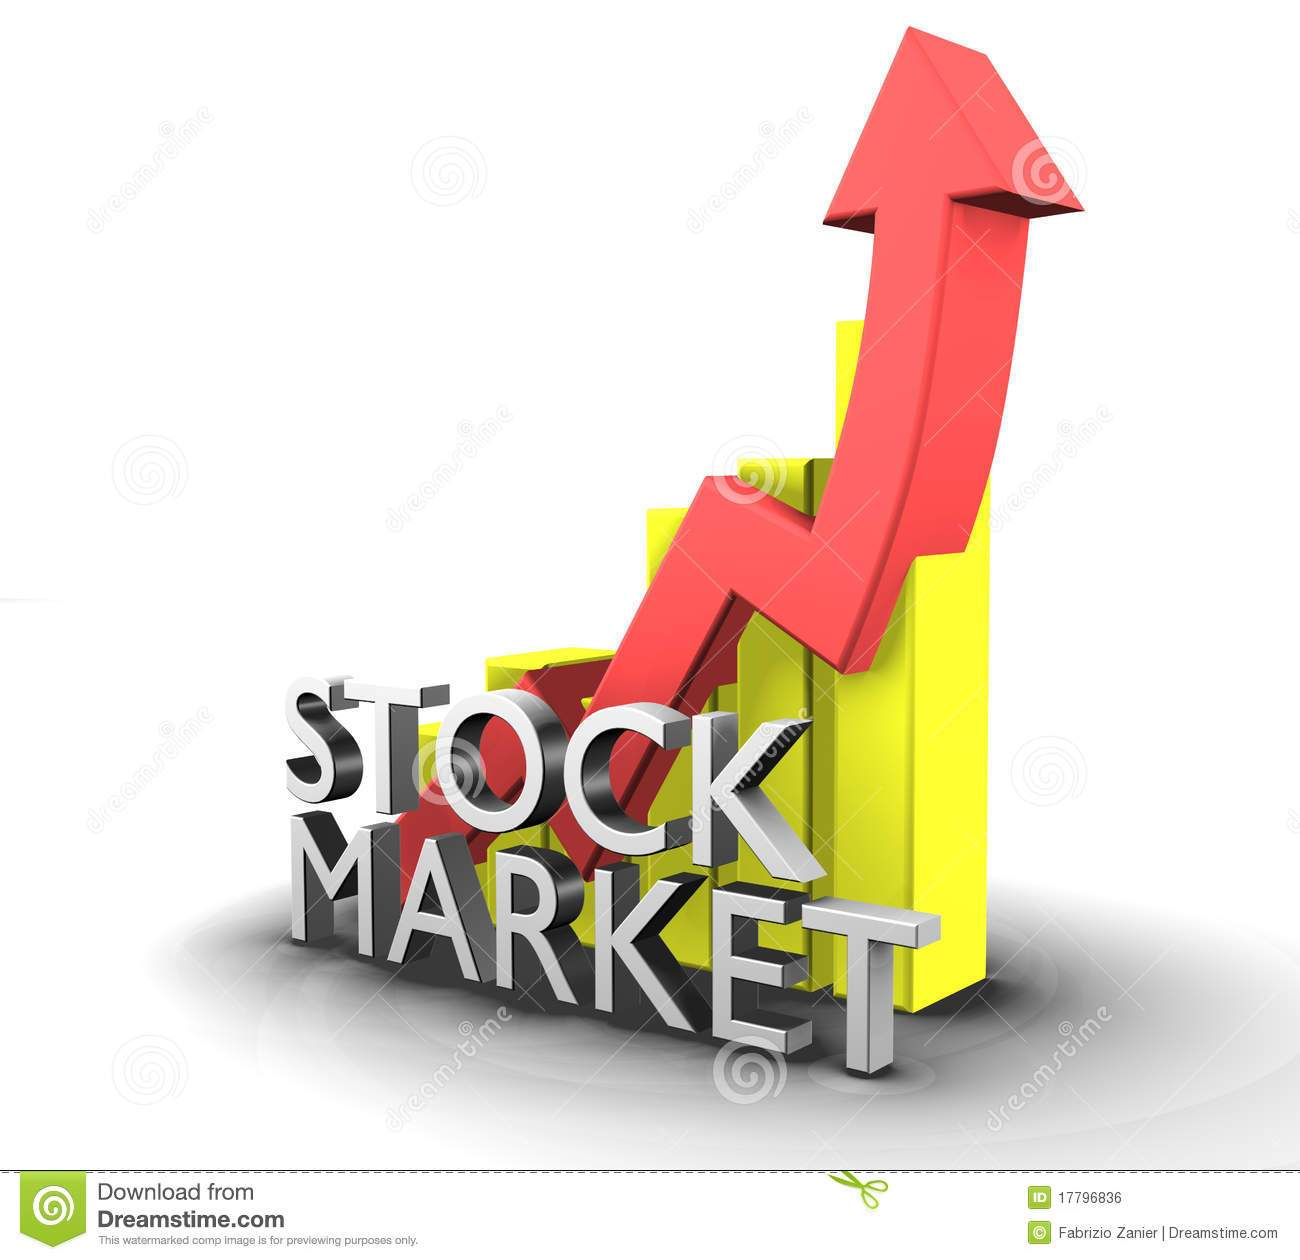 Clipart stock market transparent library Stock market rise clipart 2 » Clipart Portal transparent library